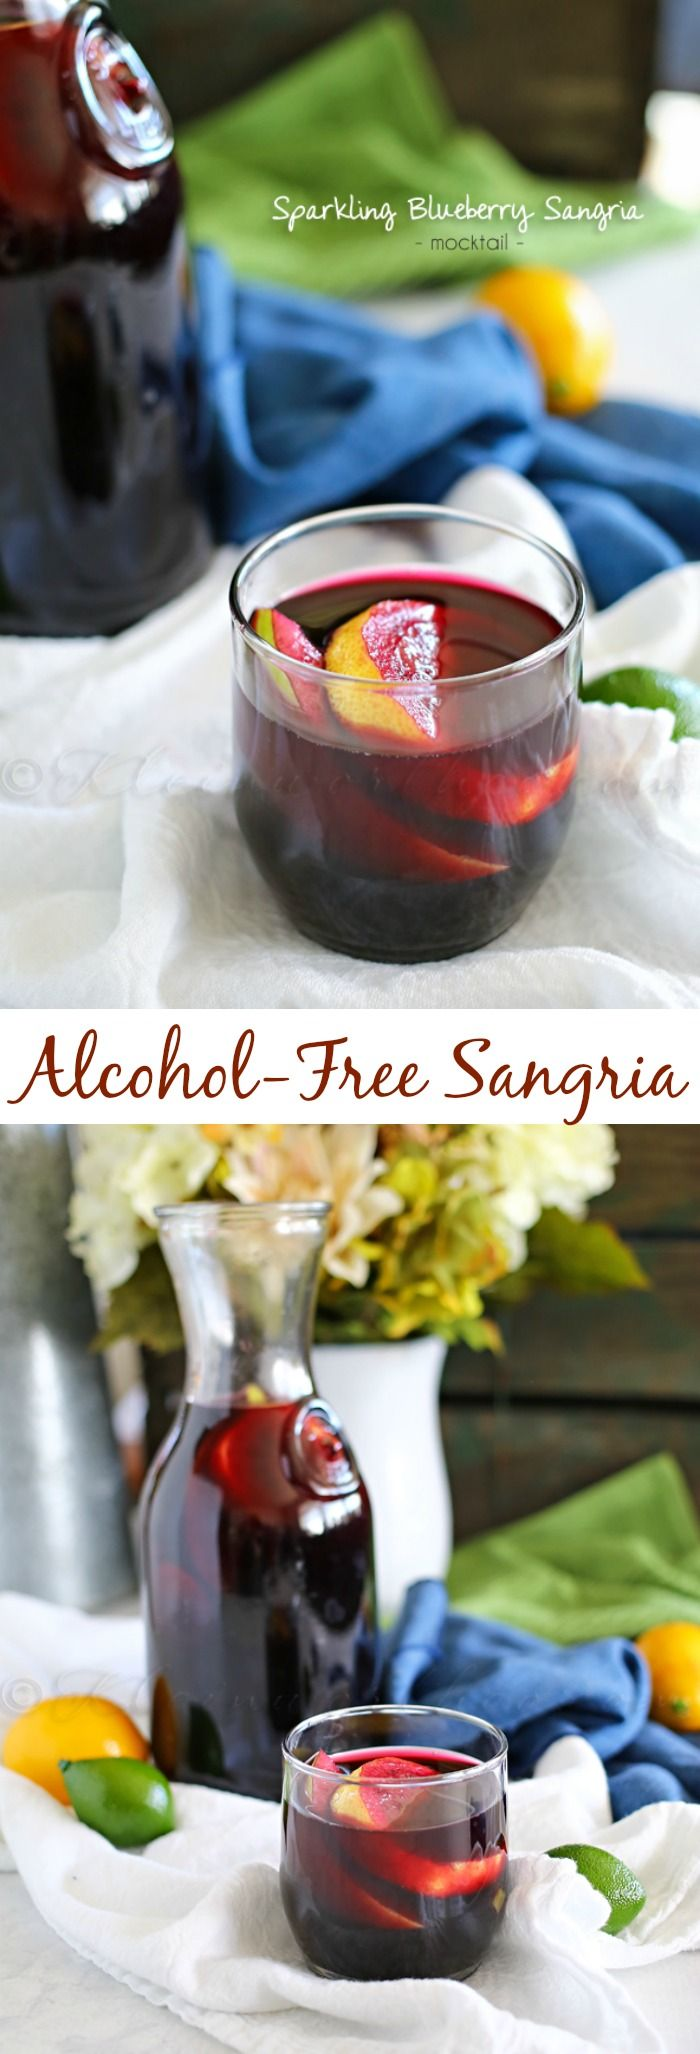 Sparkling Blueberry Sangria Mocktail. Great drink recipe for parties.